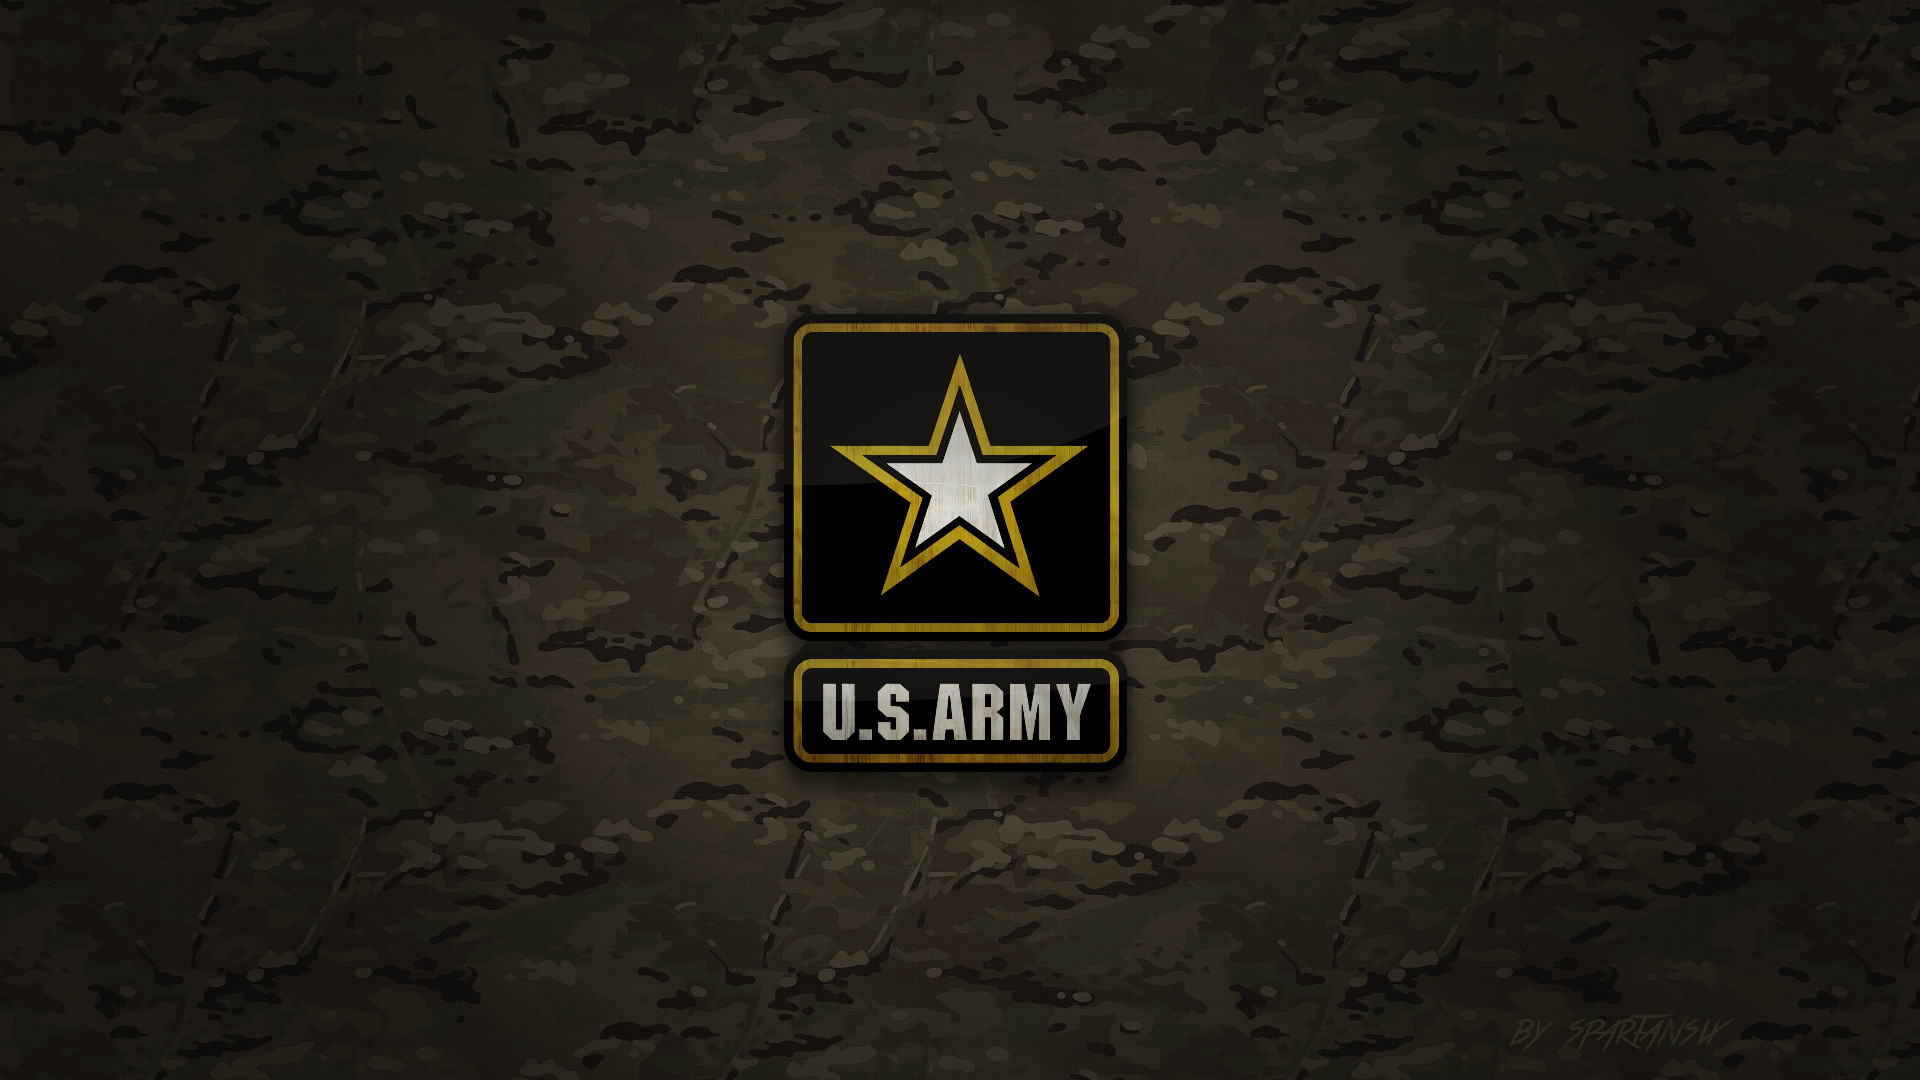 US Army Screensavers and Wallpaper 67 images 1920x1080